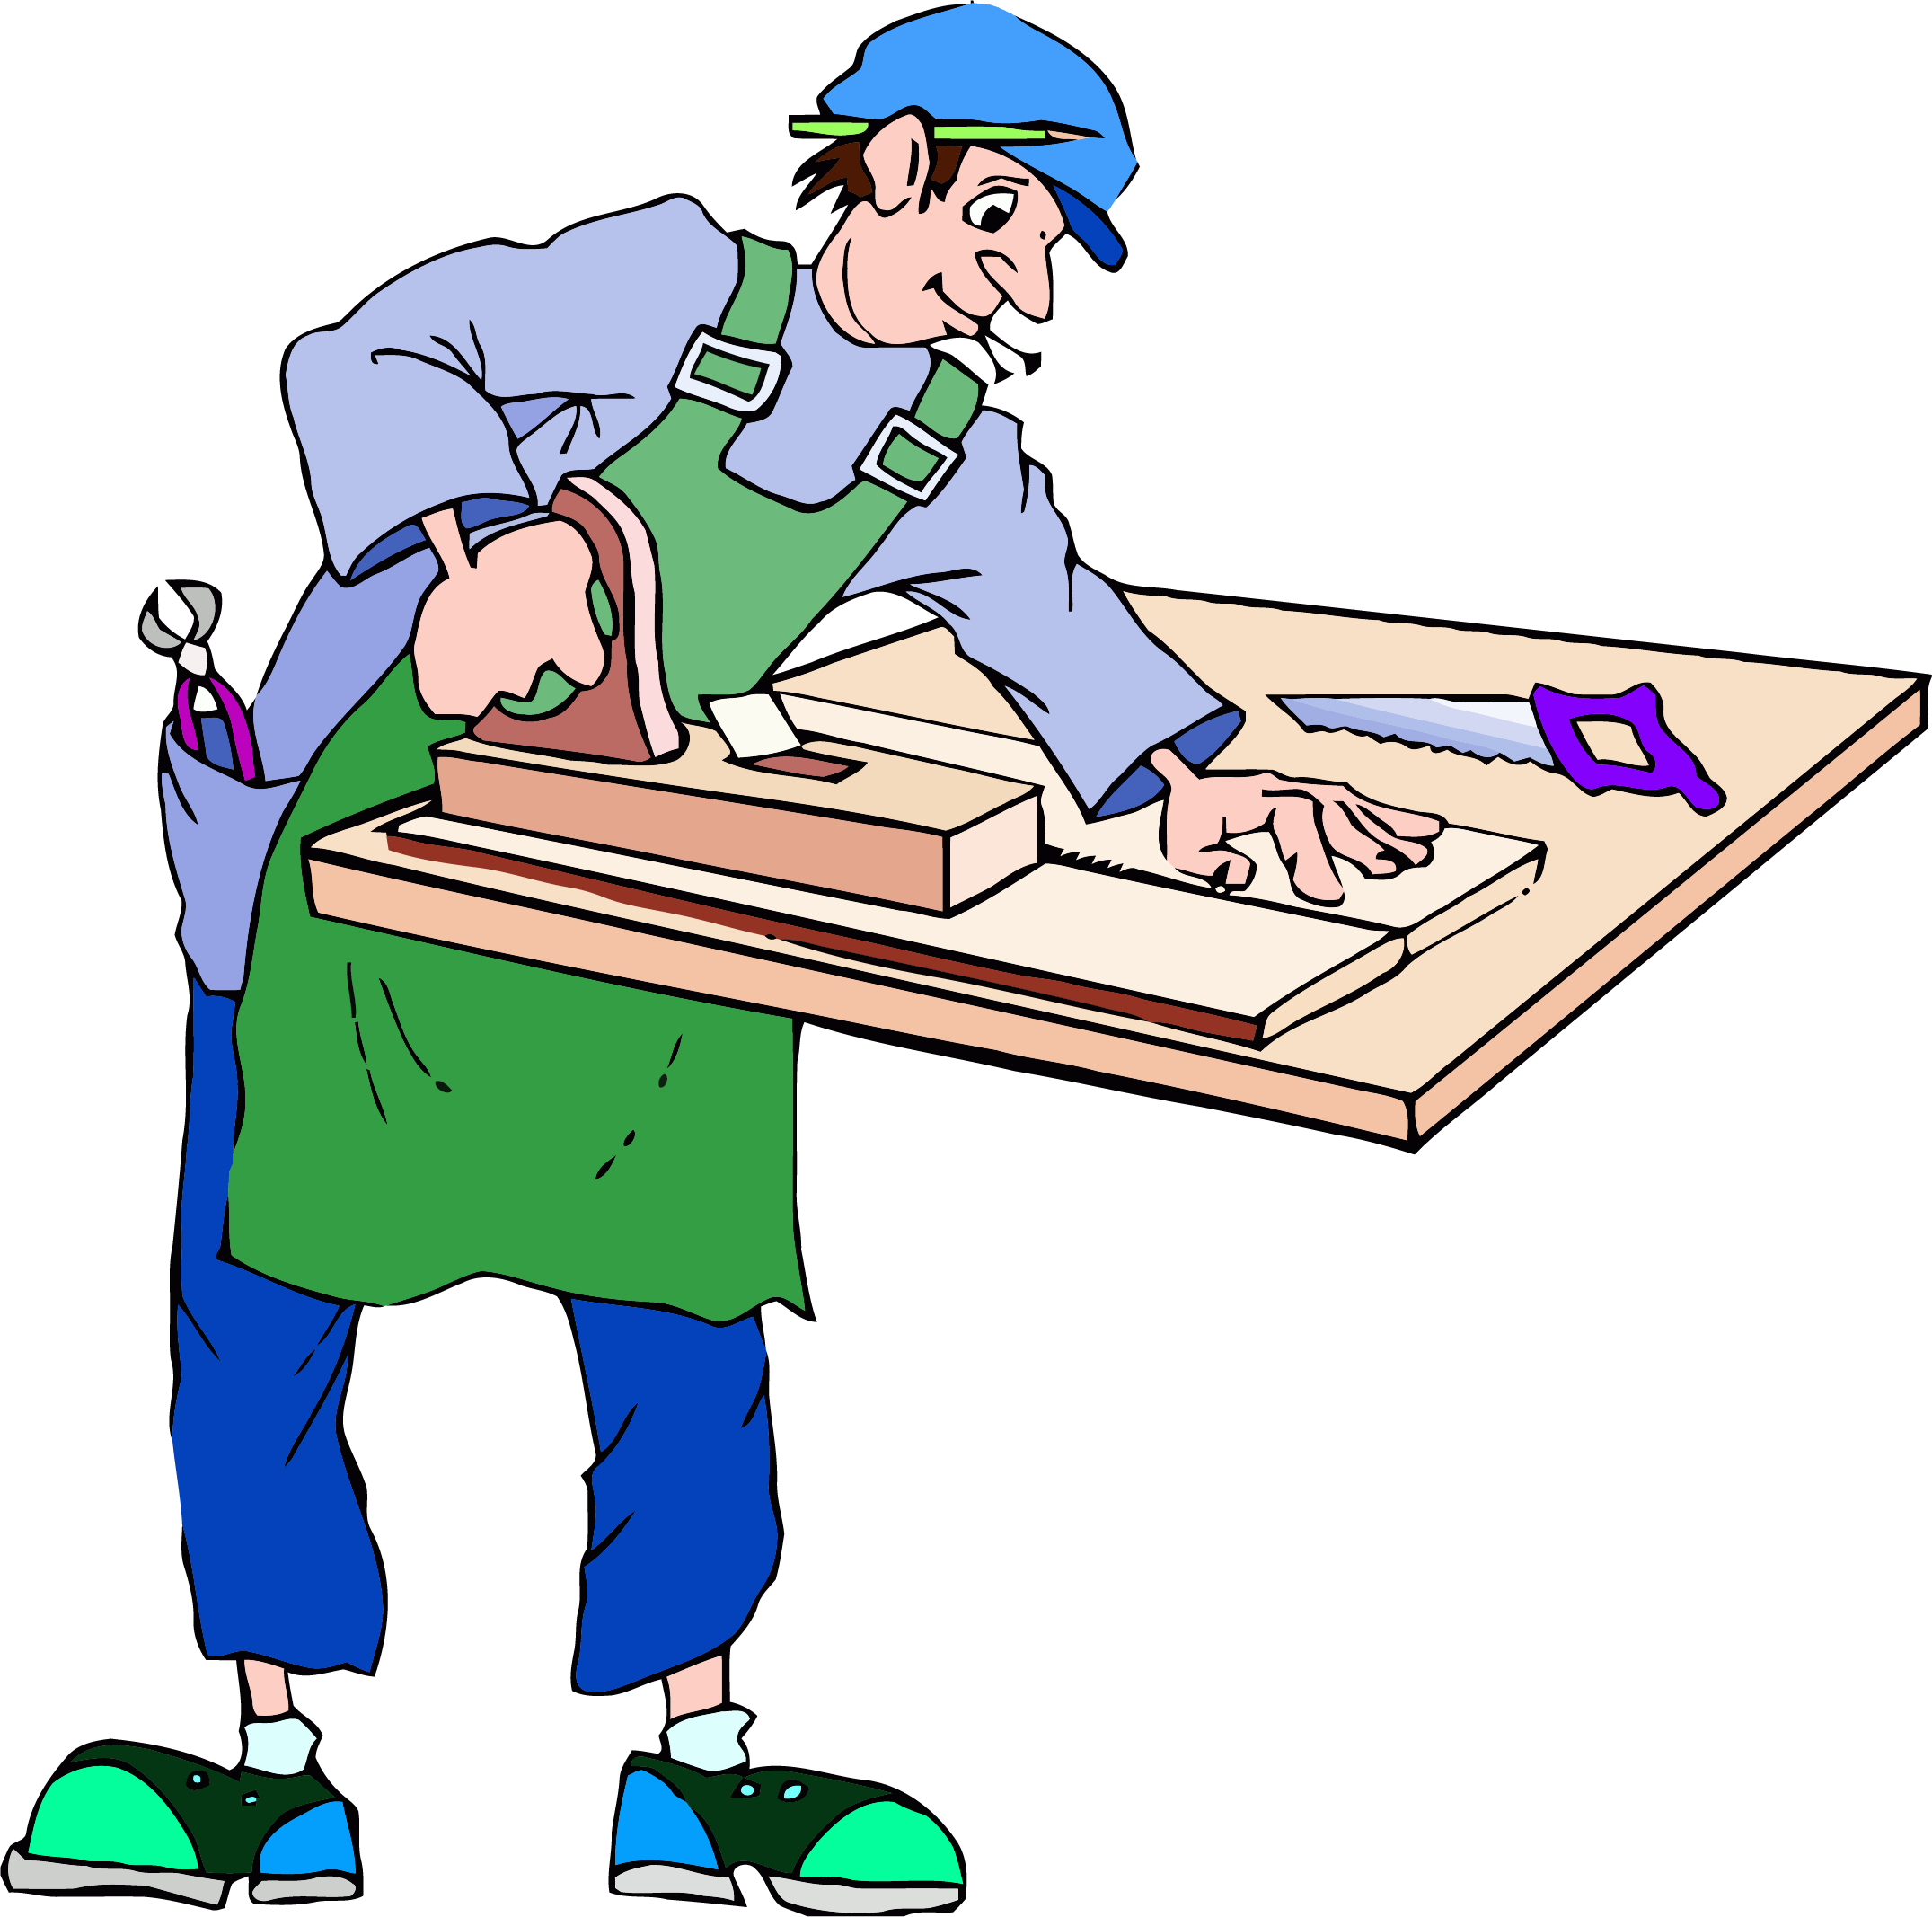 clipart free Rasp png clipartly comclipartly. Carpenter clipart